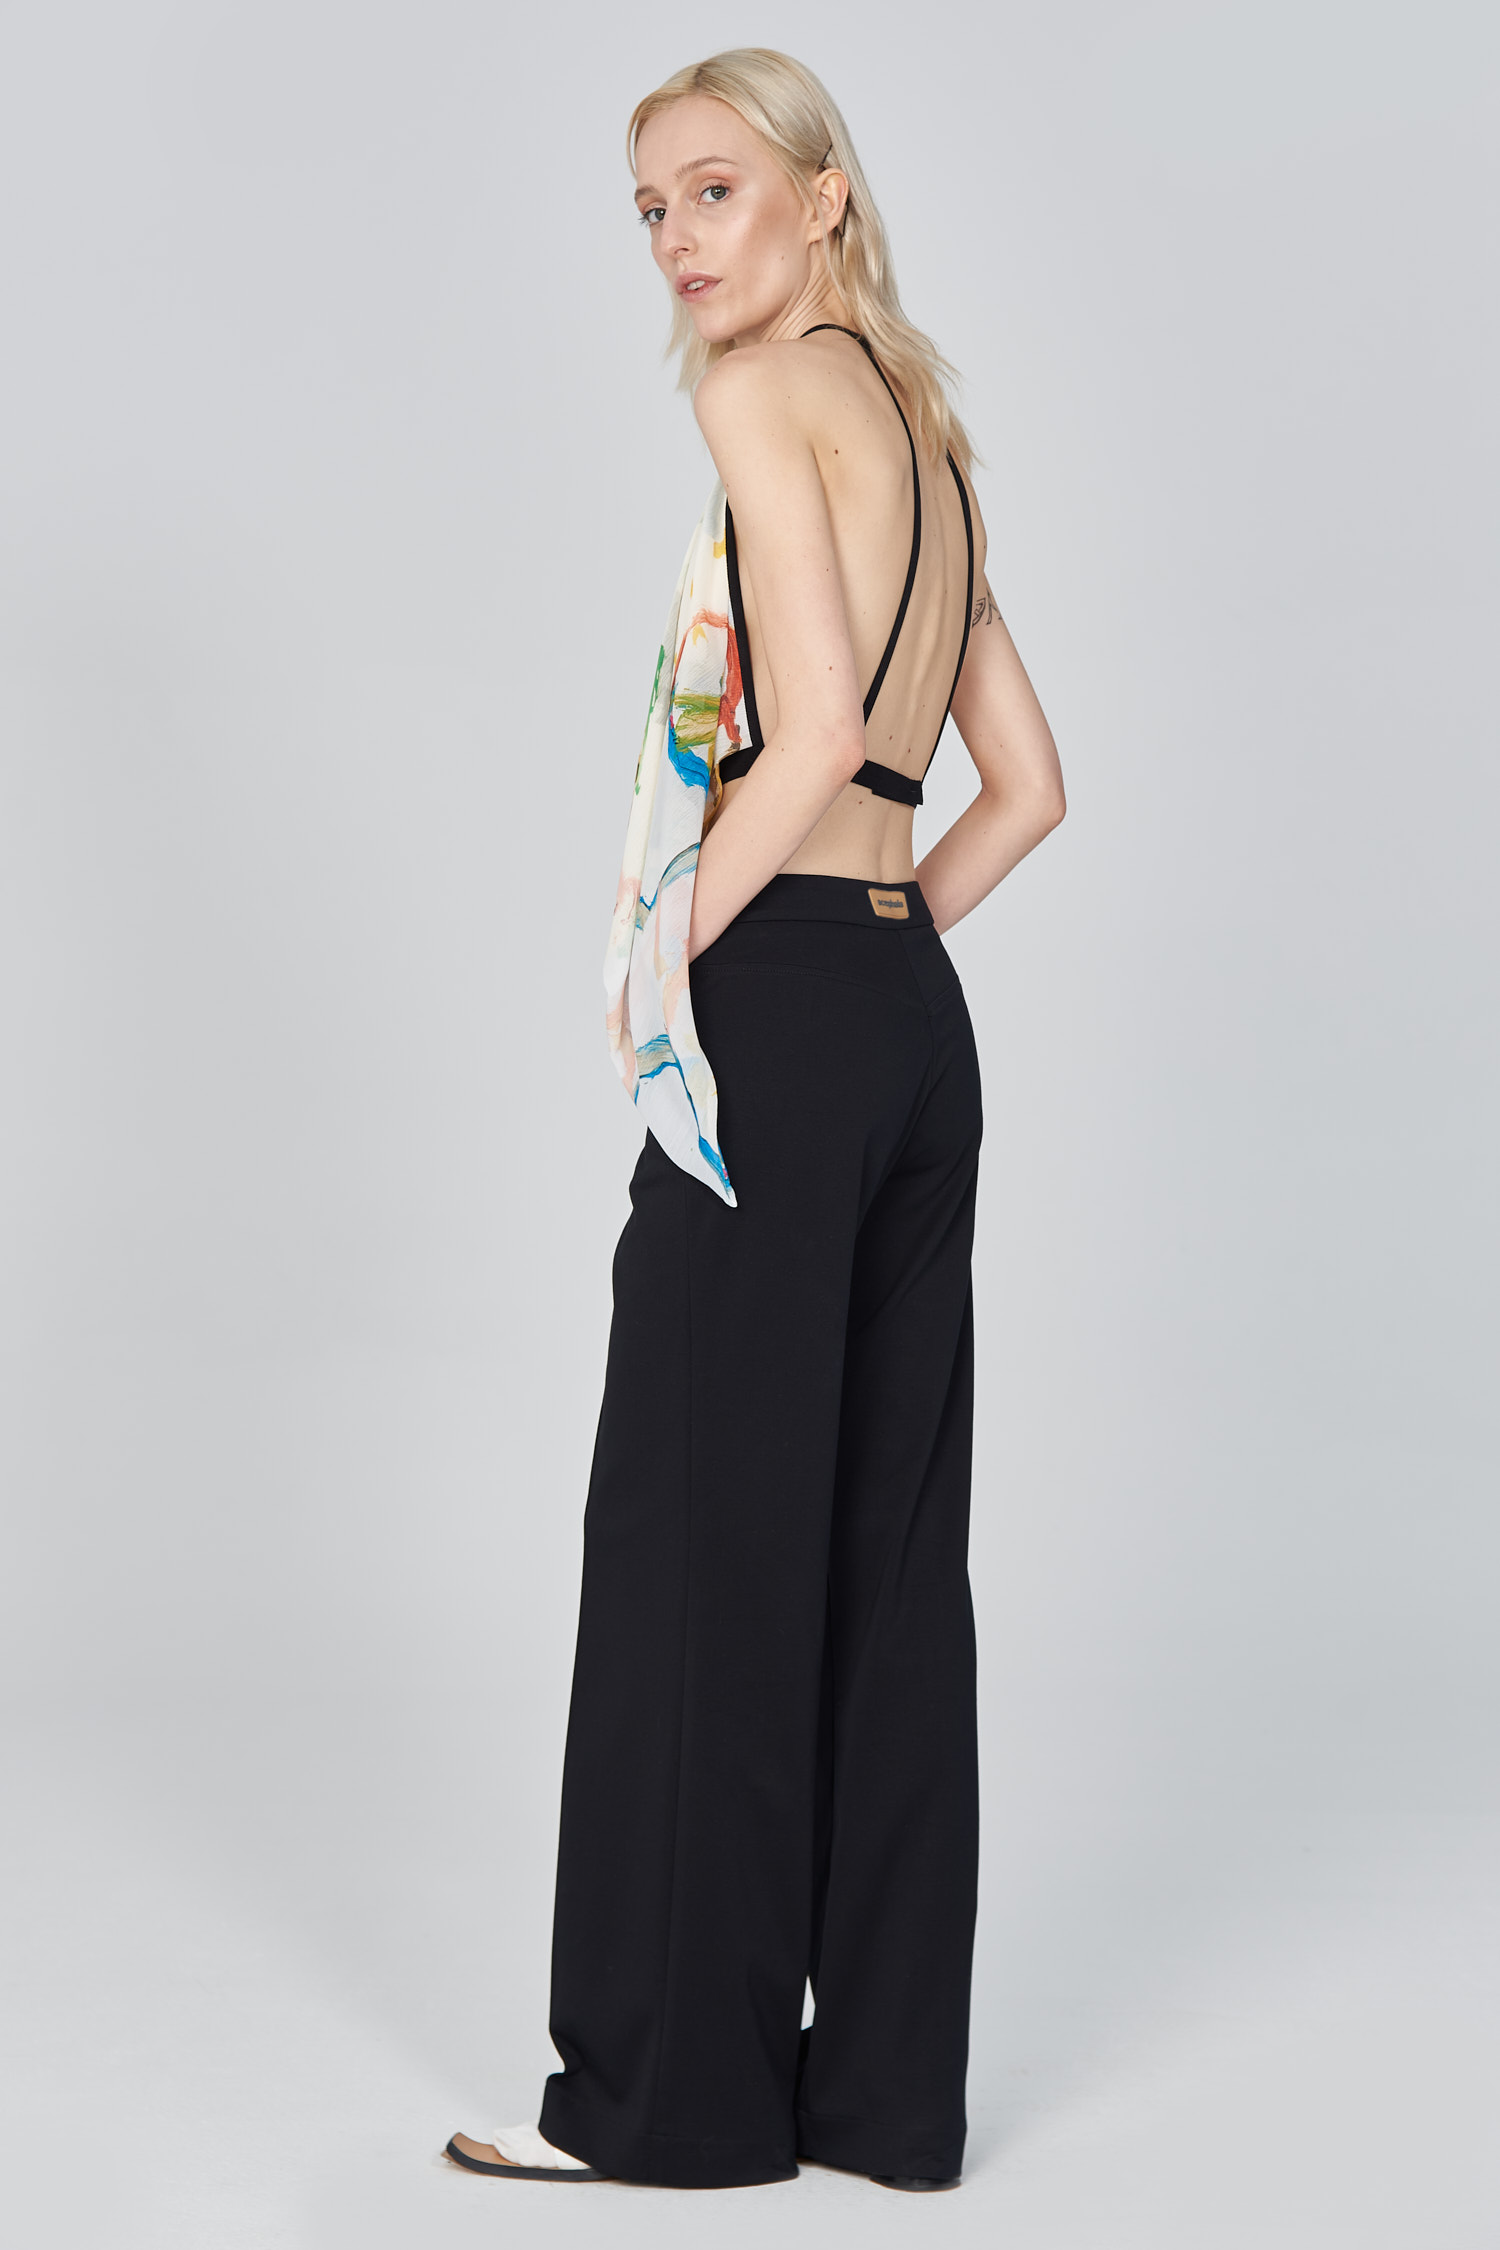 Acephala Ss21 Black Flared Trousers Printed Open Back Top Side